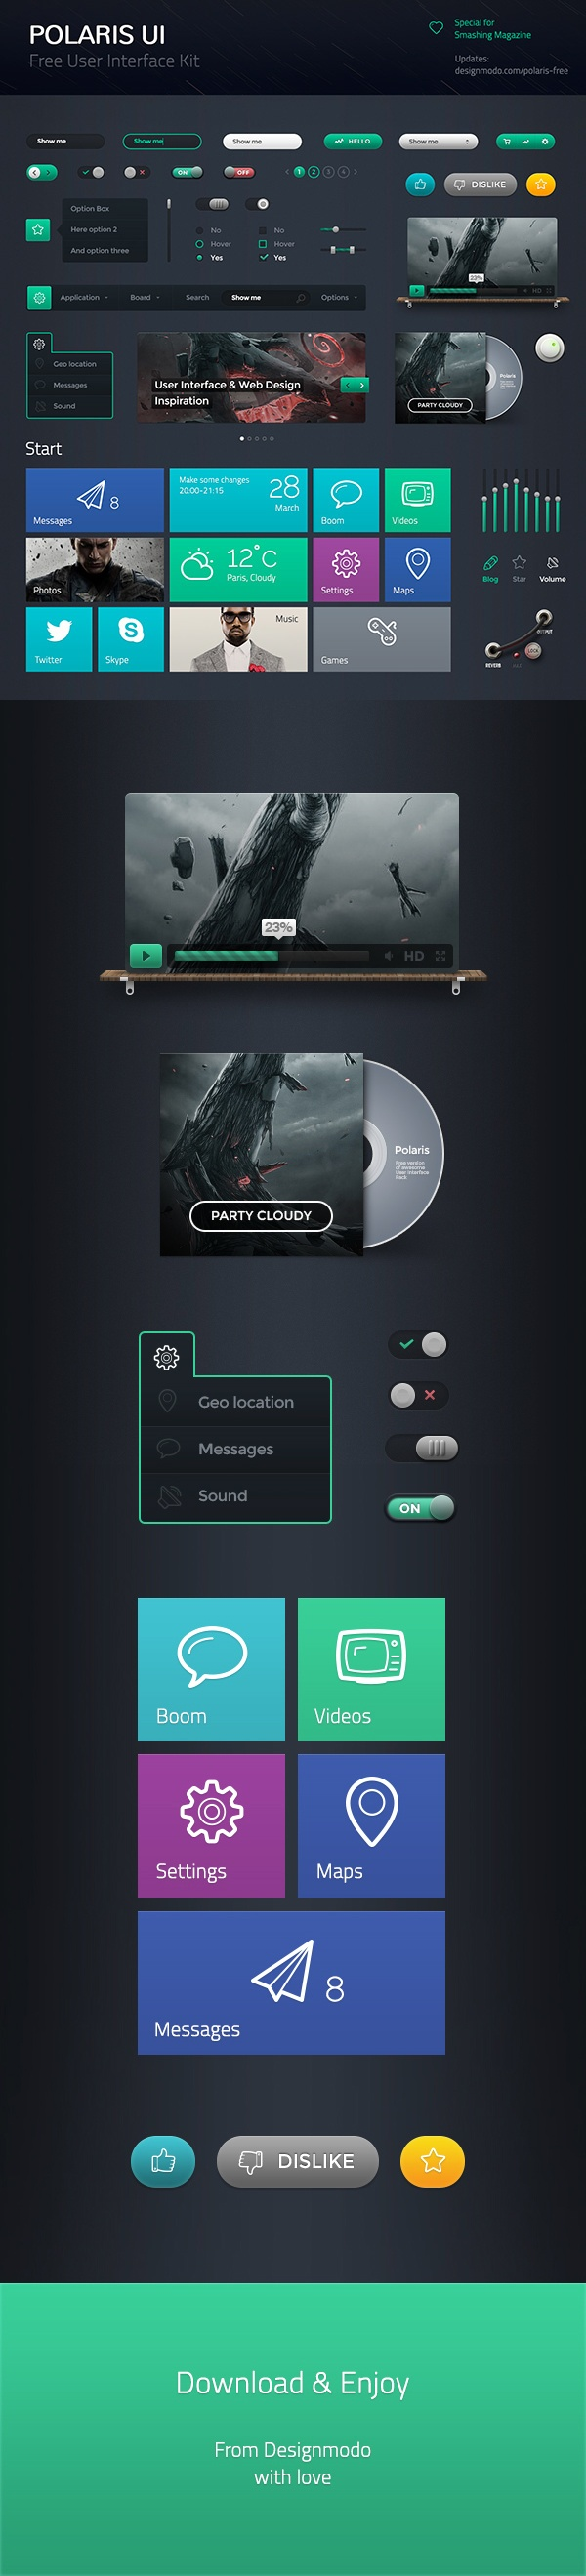 "Polaris UI Free – by Adrian *** "" Polaris UI Free is a set of beautiful free UI components, which includes Edit Boxes, Check Boxes, Radio Buttons, Page Navigation, Menu, Buttons, etc. You can use this UI Kit in any of your projects, and even learn with it, by examining each component to see how it is put together. """